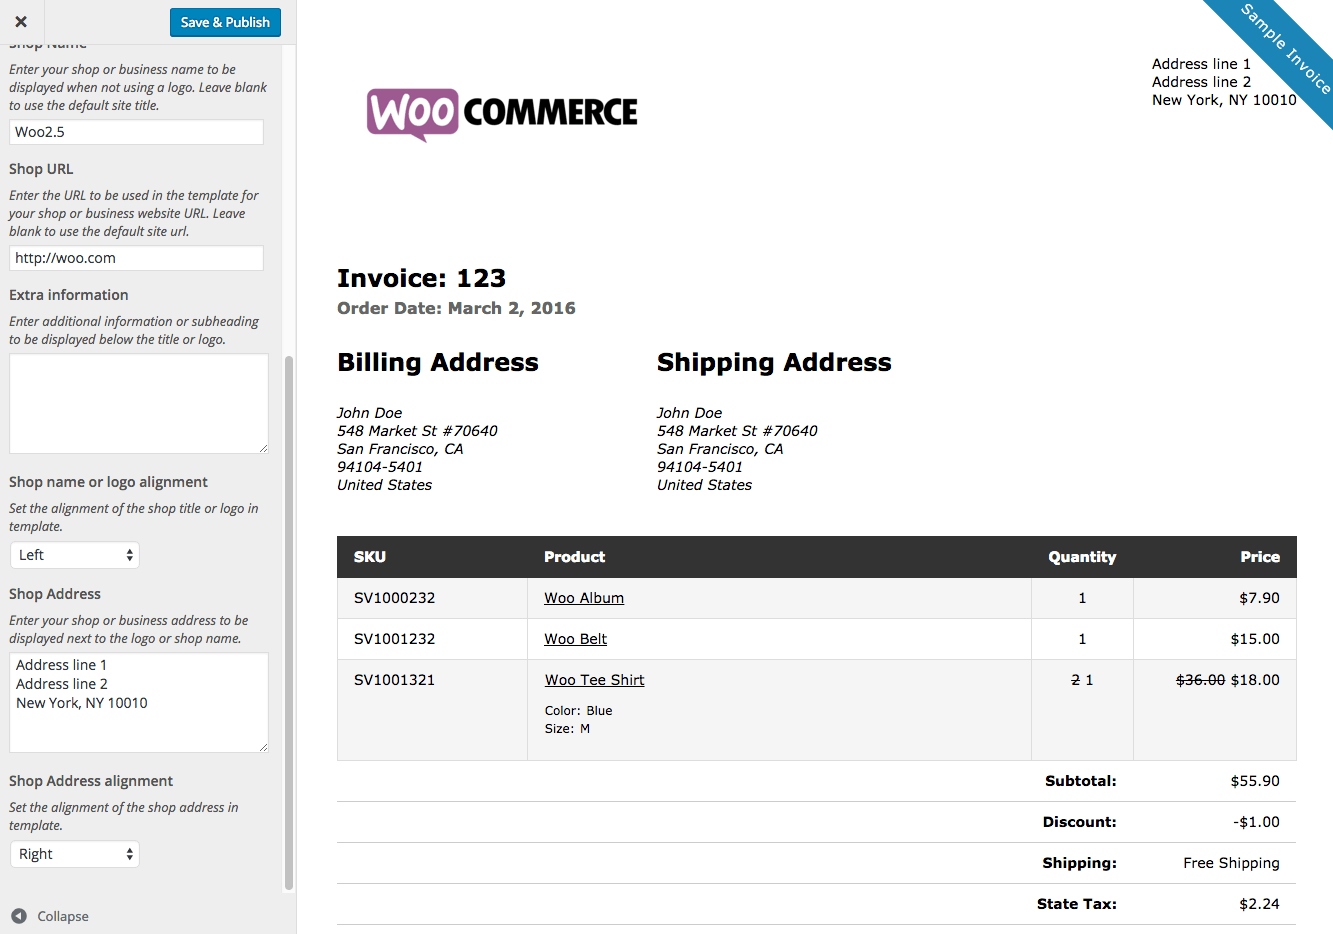 Weirdmailus  Unusual Woocommerce Print Invoices Amp Packing Lists  Woocommerce Docs With Likable Woocommerce Print Invoices  Packing Lists Customizer With Delightful Pay The Invoice Also It Invoice Template In Addition Paypal Fees Invoice And Free Excel Invoice Templates As Well As Invoice Now Additionally Proforma Invoice Template Pdf From Docswoocommercecom With Weirdmailus  Likable Woocommerce Print Invoices Amp Packing Lists  Woocommerce Docs With Delightful Woocommerce Print Invoices  Packing Lists Customizer And Unusual Pay The Invoice Also It Invoice Template In Addition Paypal Fees Invoice From Docswoocommercecom